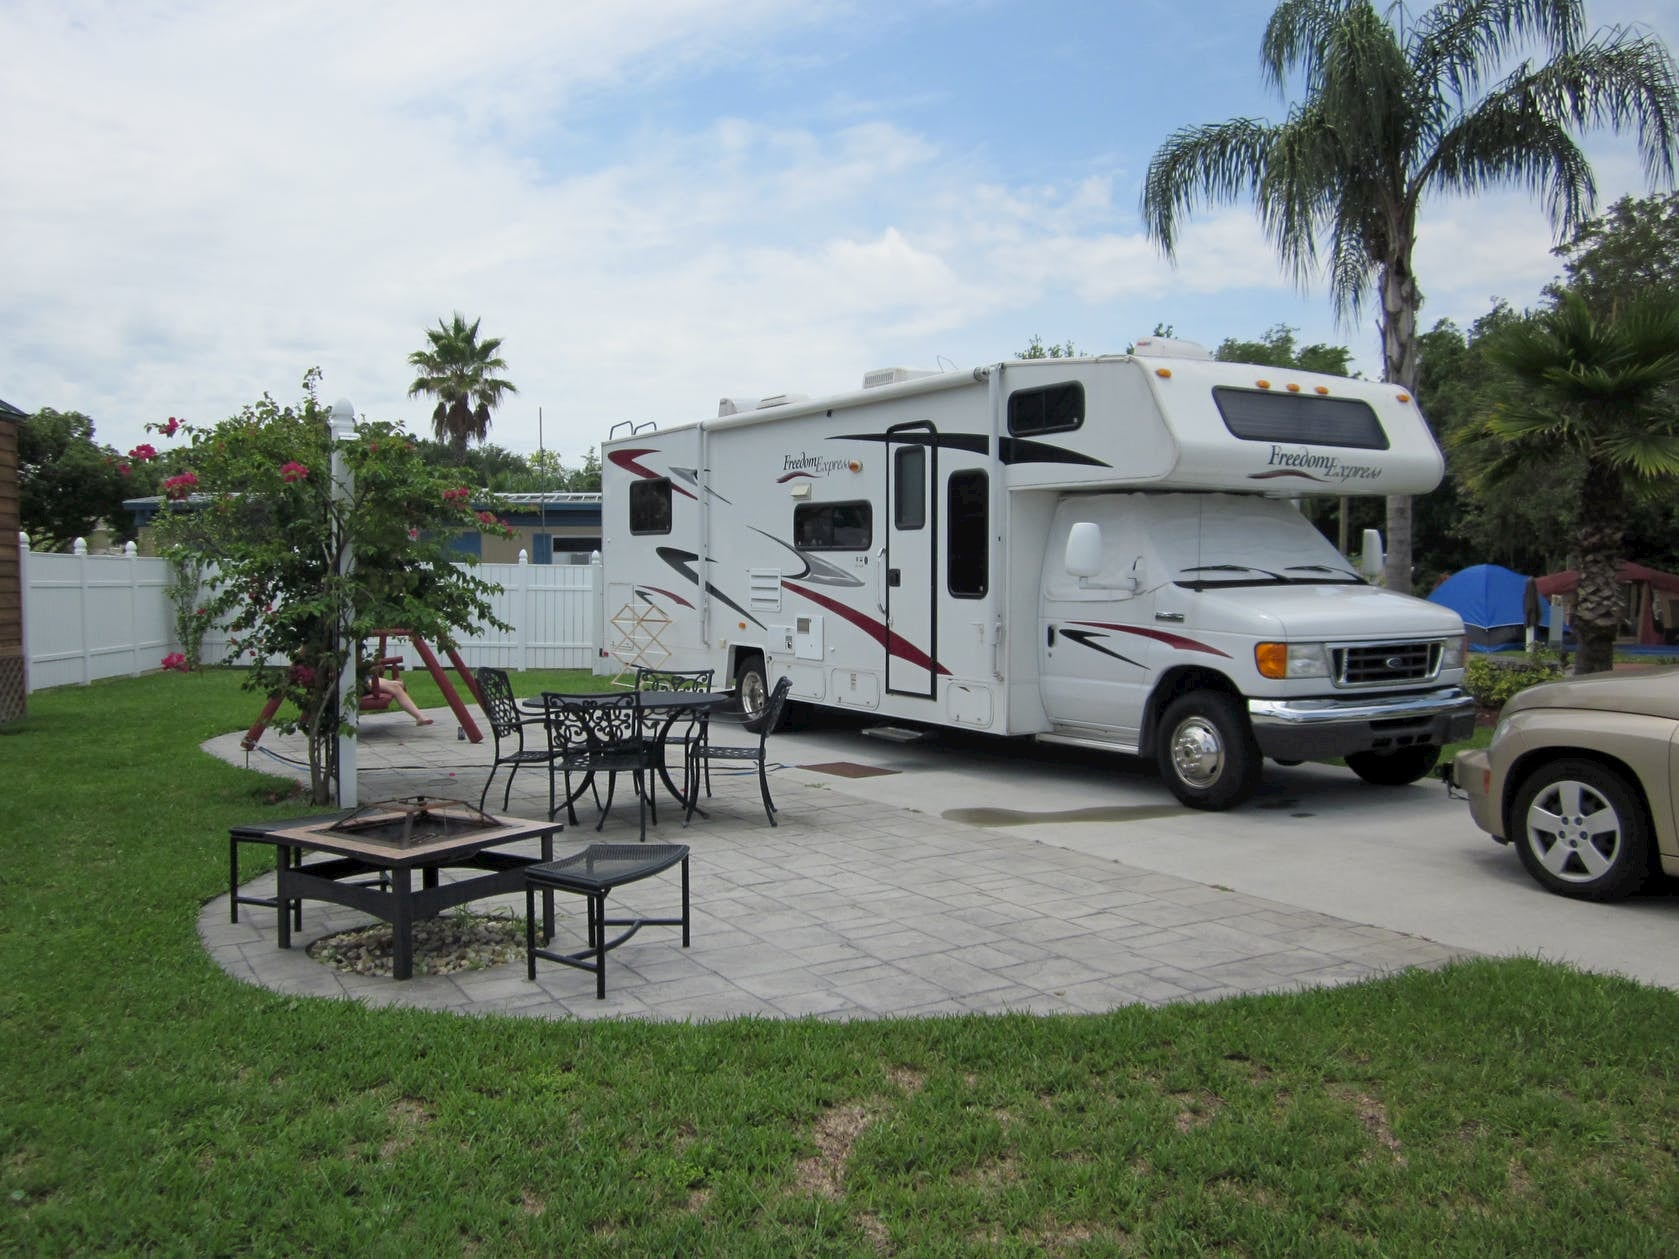 RV parked beside picnic table at campground in florida.